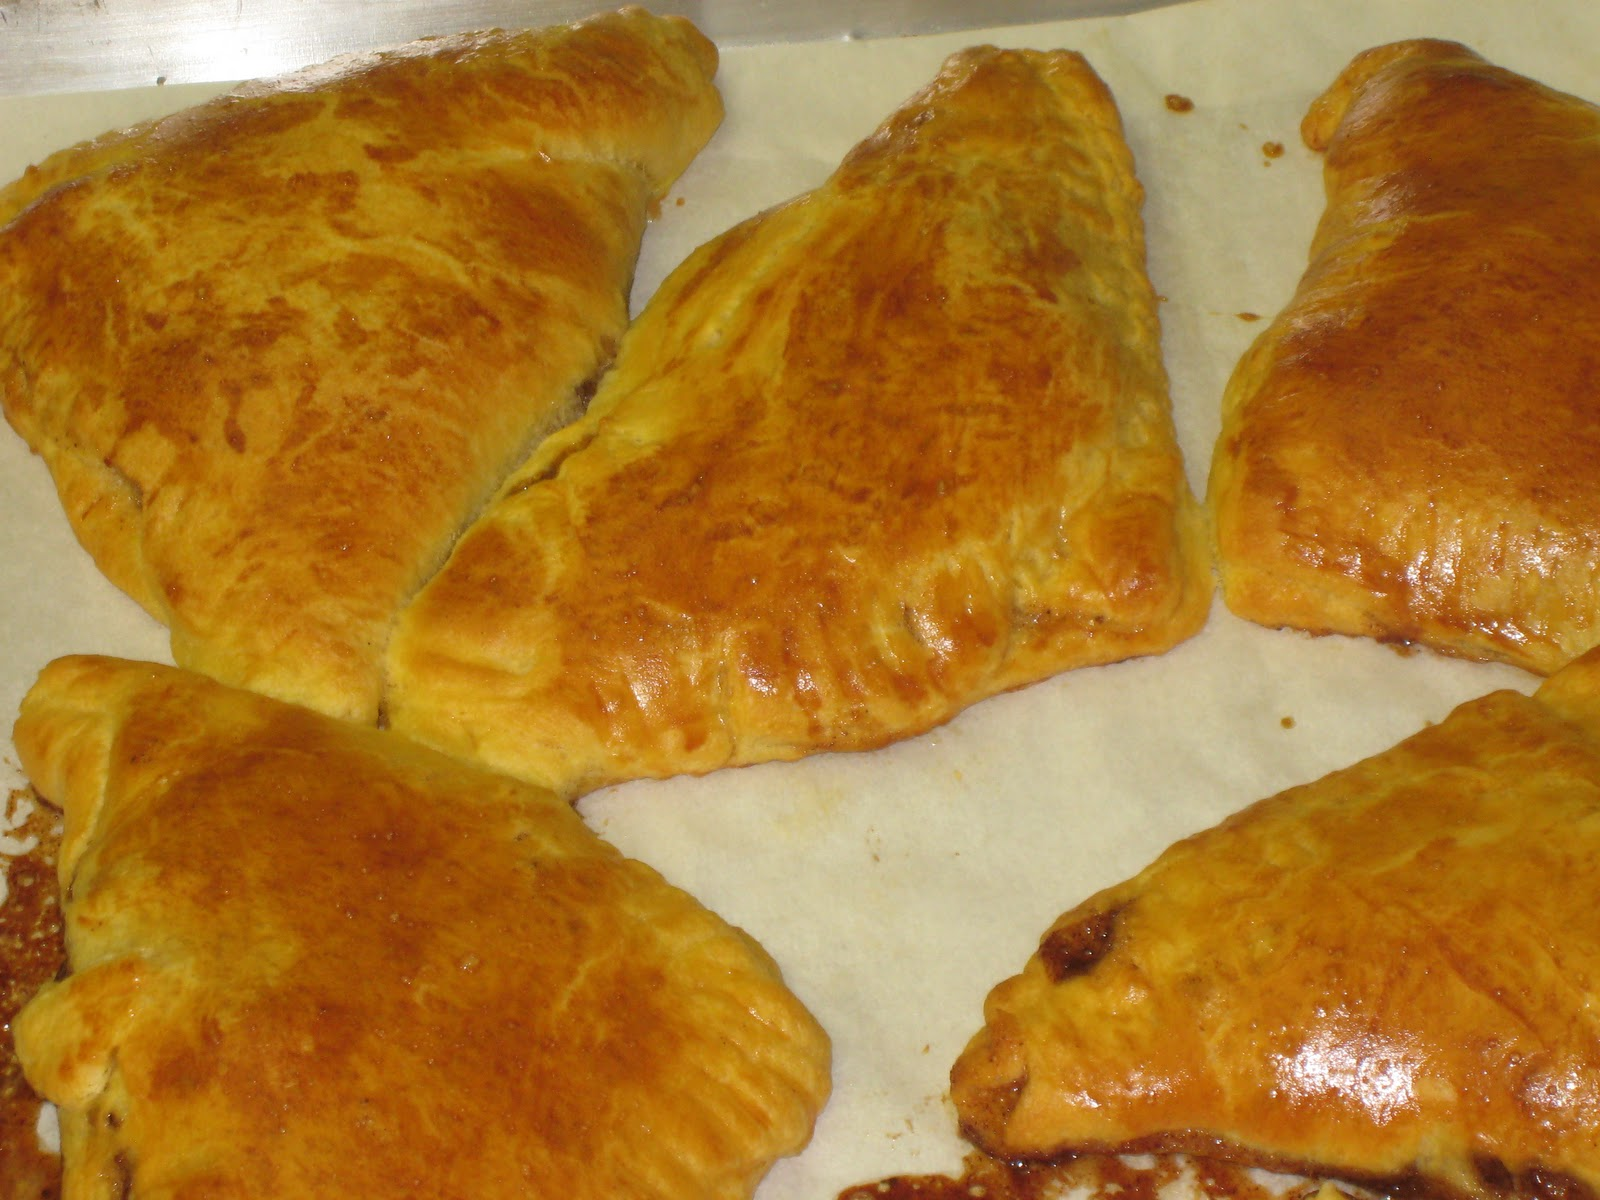 Delicious apple turnovers